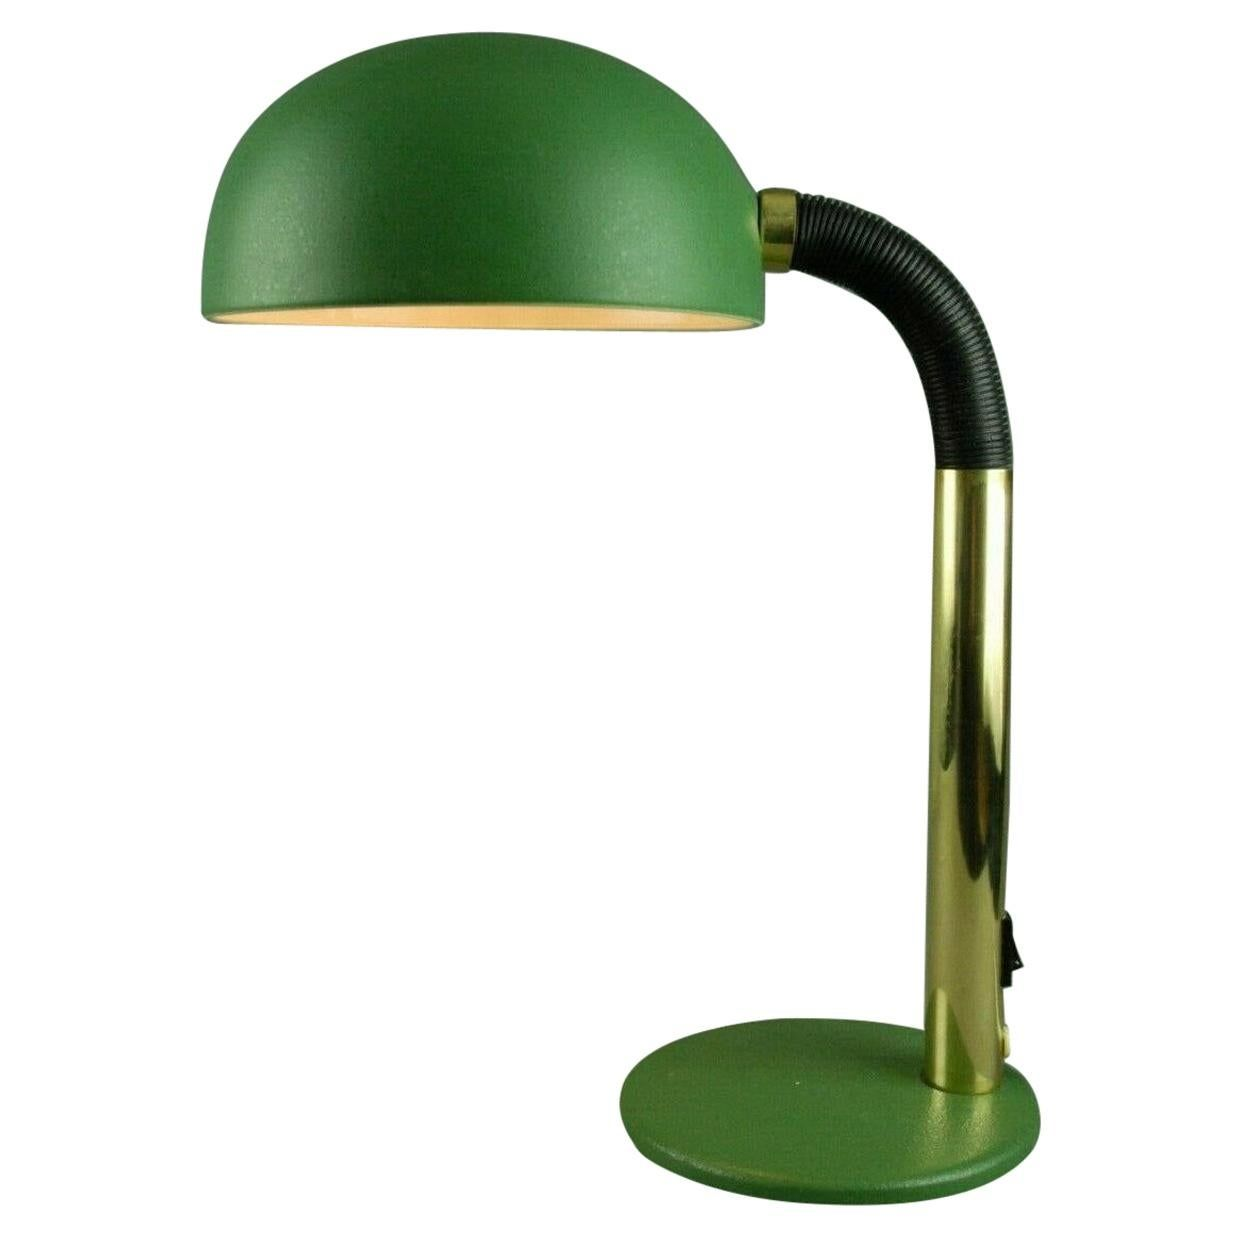 Leuchten Kaiser Green And Brass Metal 1960s Desk Lamp Manufactured By Kaiser Leuchten, Germany - For Sale | The Kairos Collective Uk